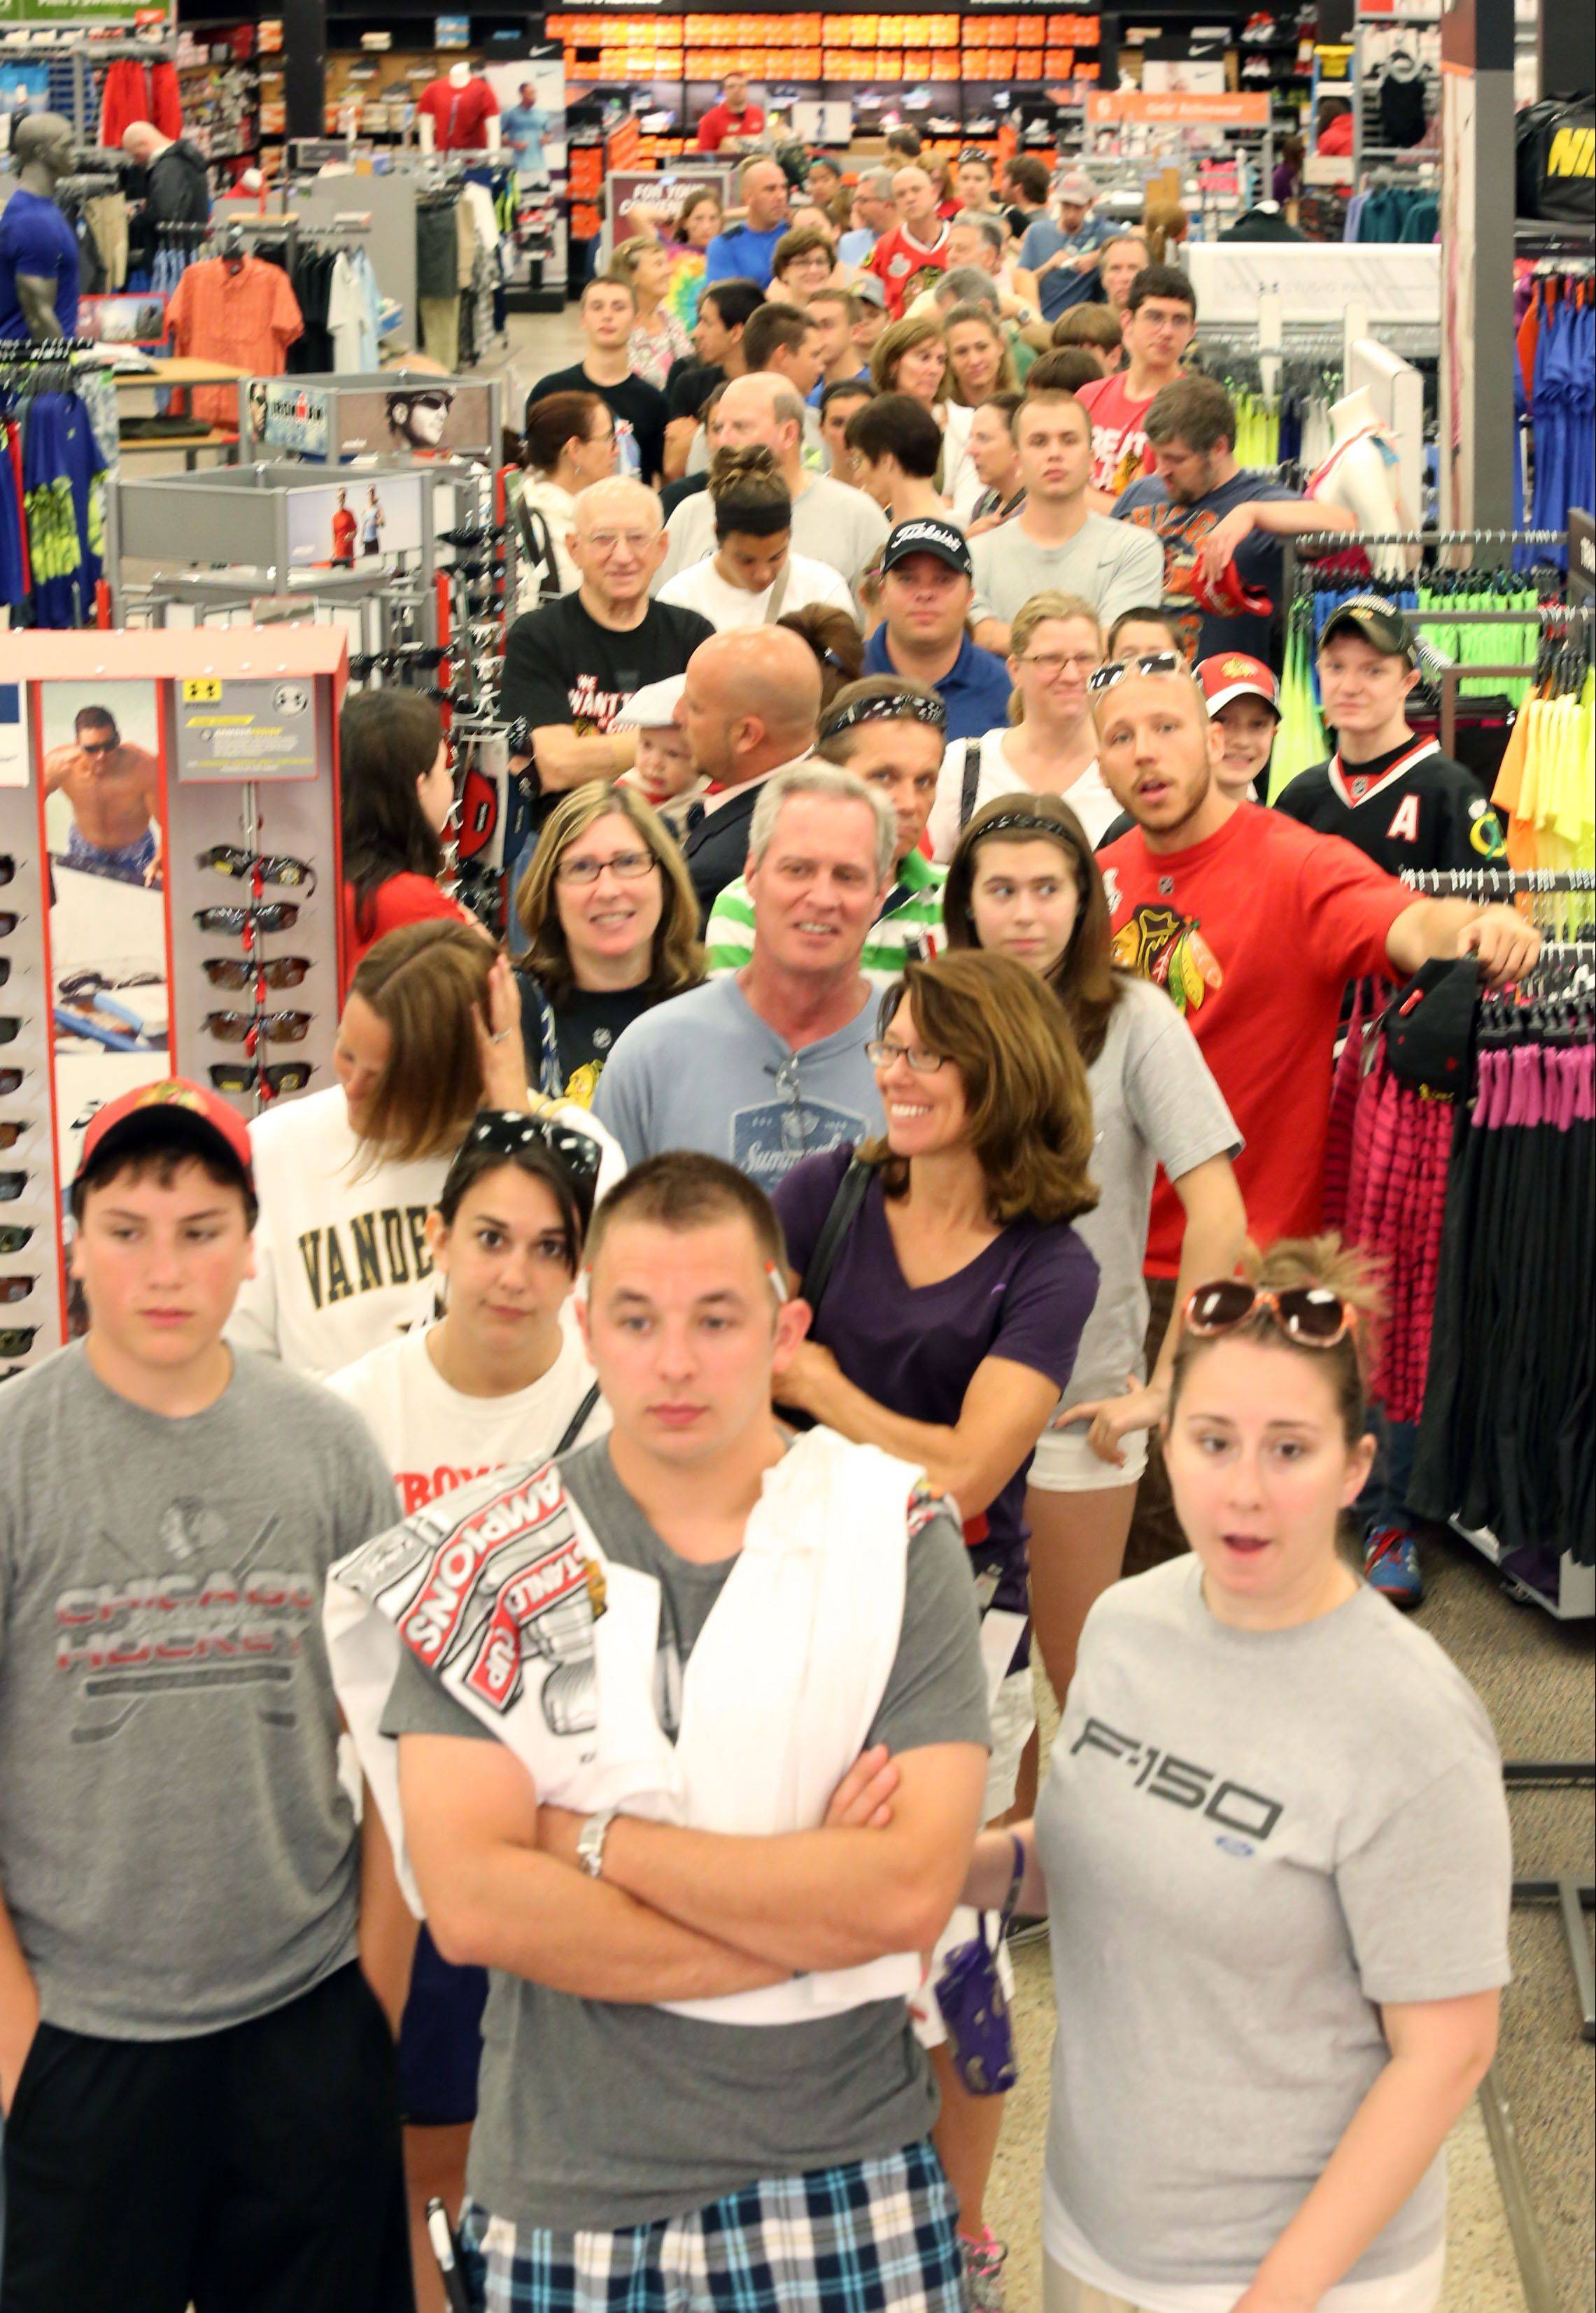 About 120 shoppers stood in line for hours to purchase official Chicago Blackhawks Stanley Cup hats at Sports Authority at Randhurst Village in Mount Prospect on Tuesday. The store brought in more supplies after selling out quickly.